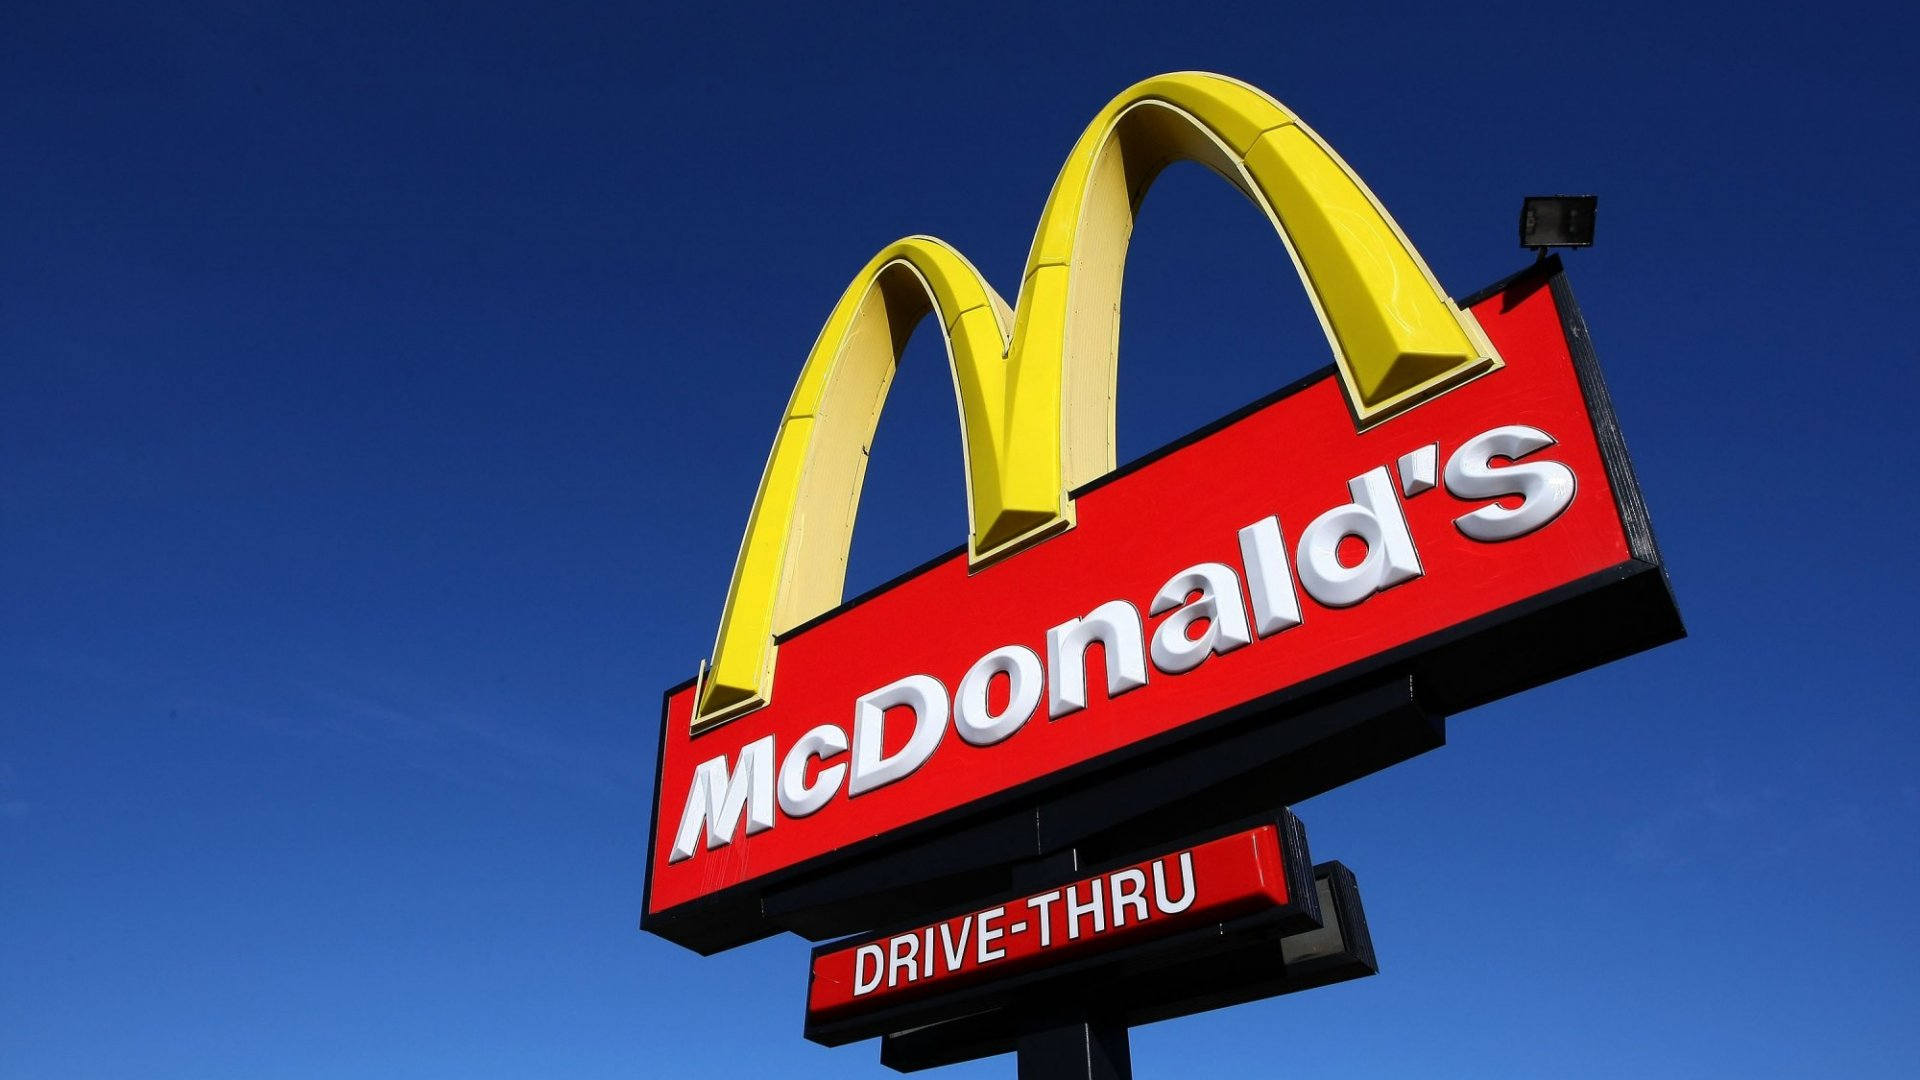 McDonald's Has a Secret Menu Change in the Works That Is Going to Surprise and Delight Customers